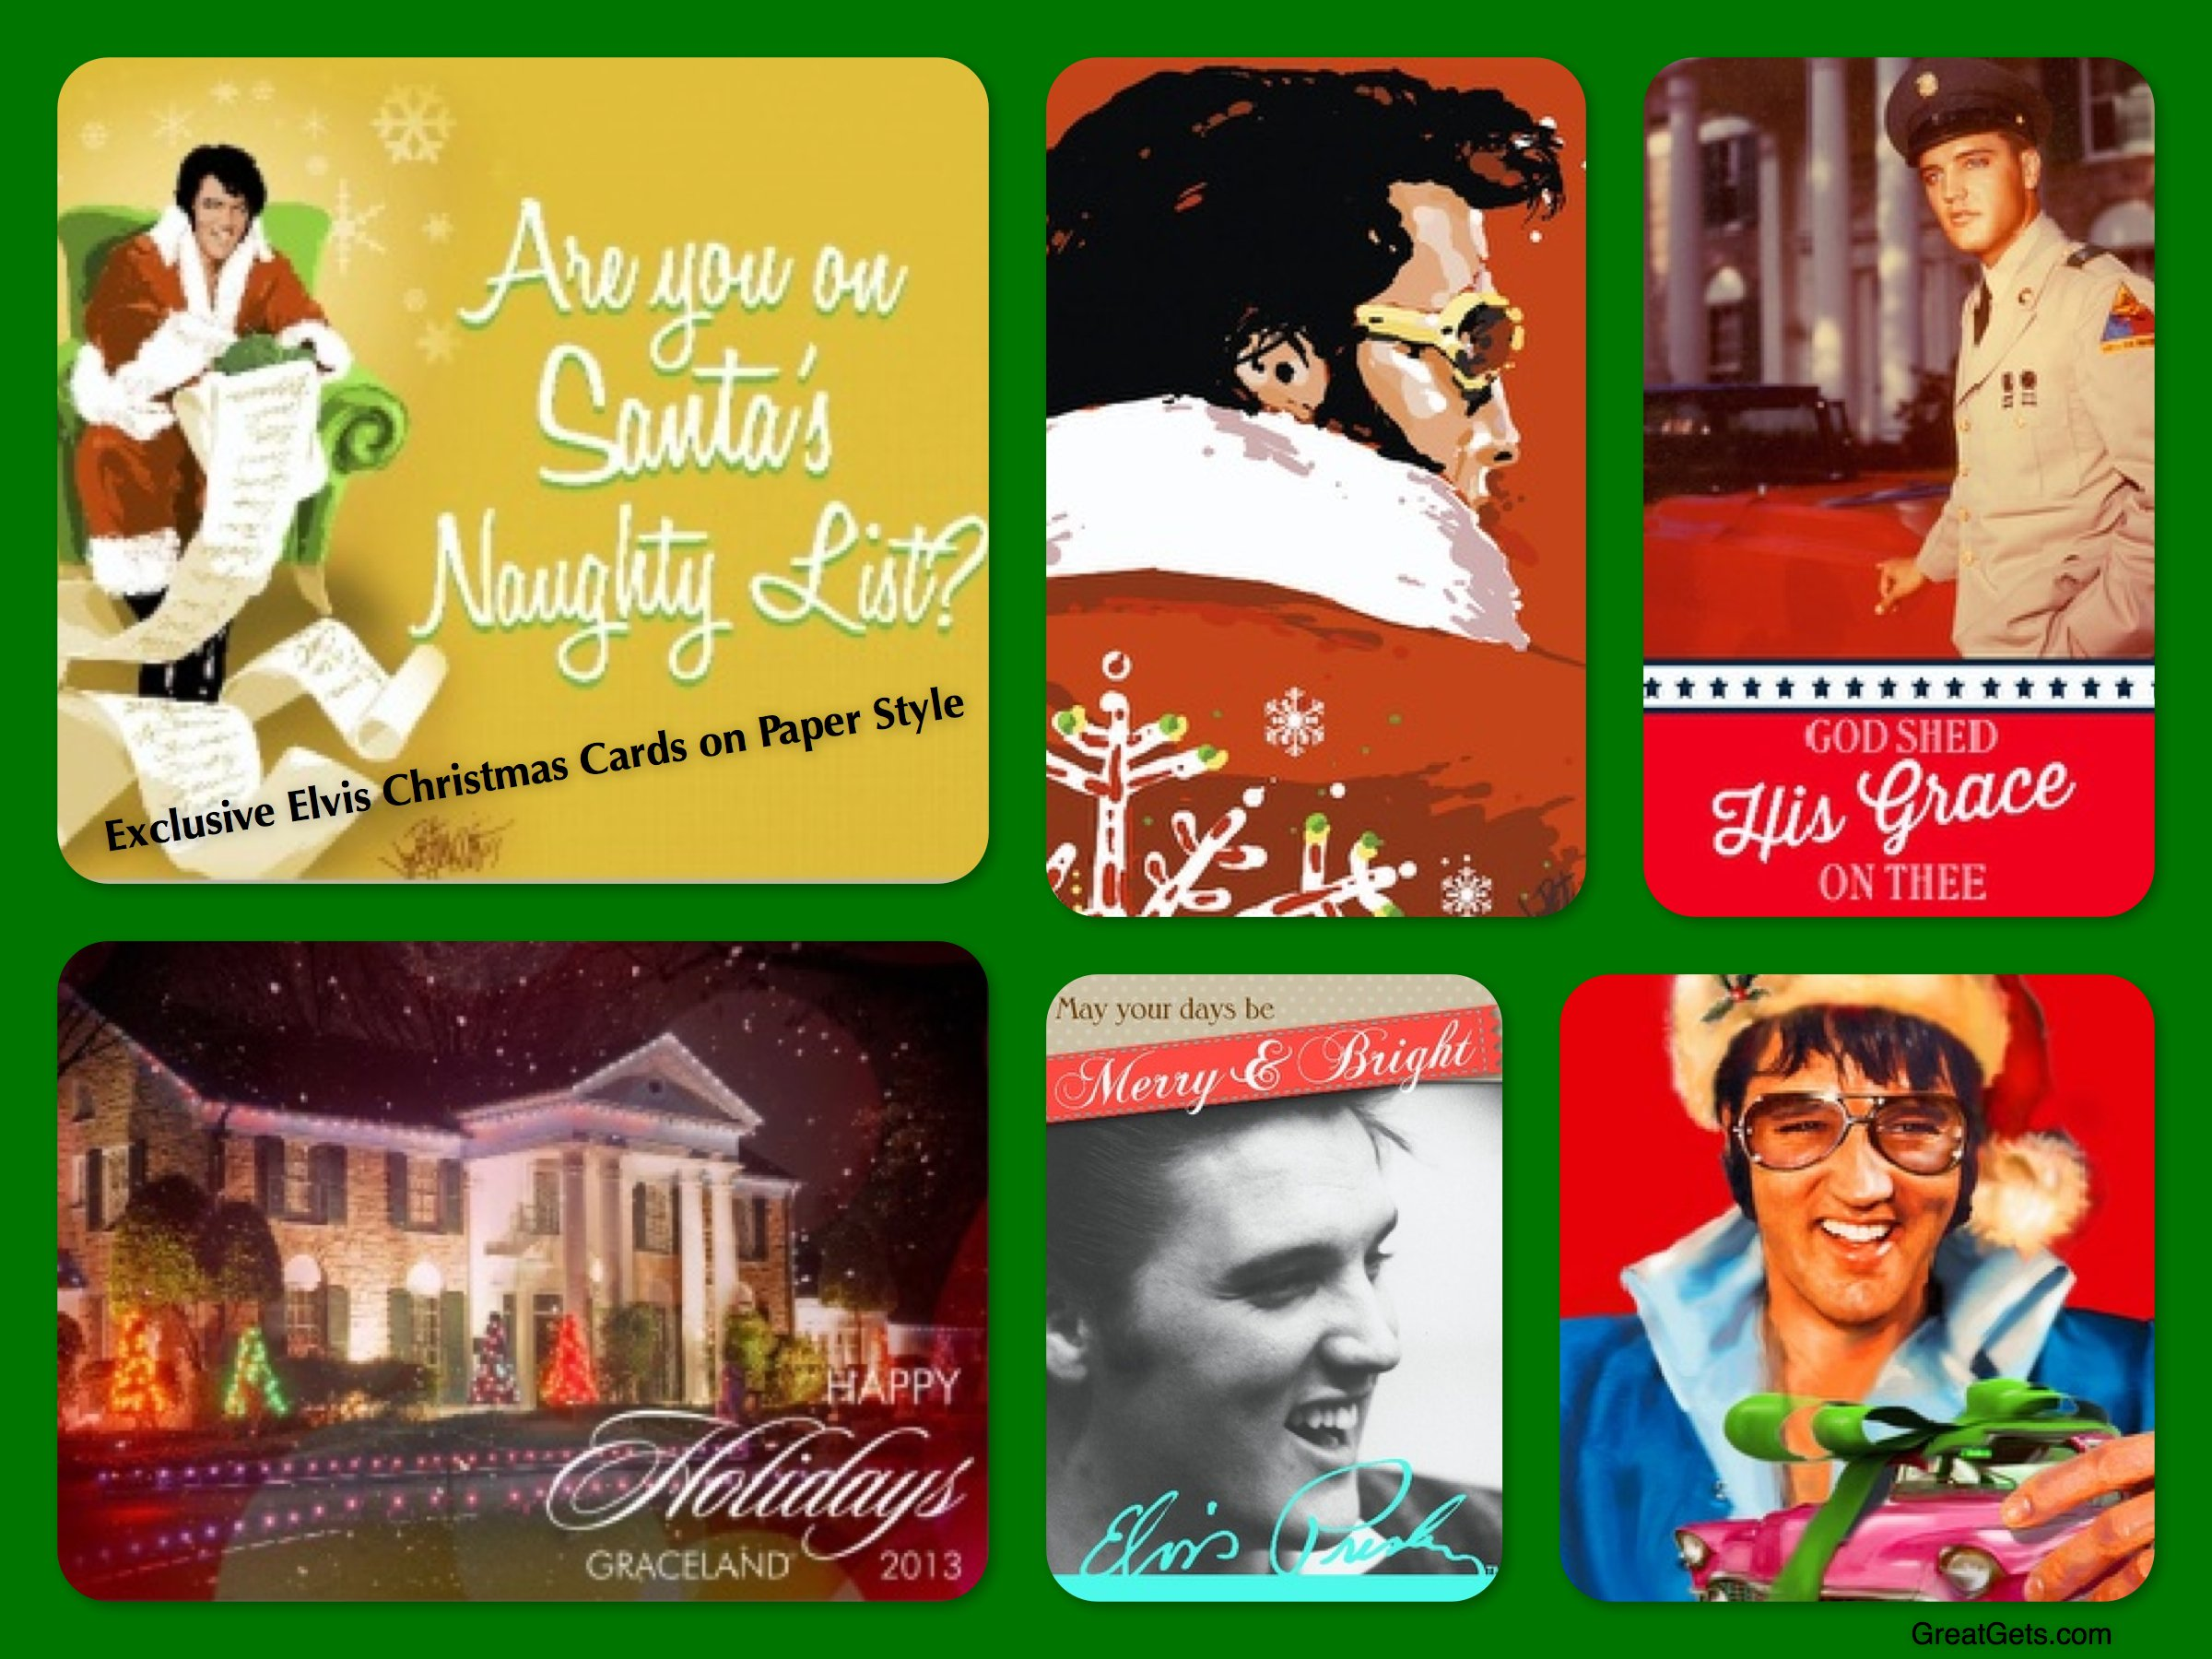 Elvis Christmas Cards, holiday cards, seasons greetings